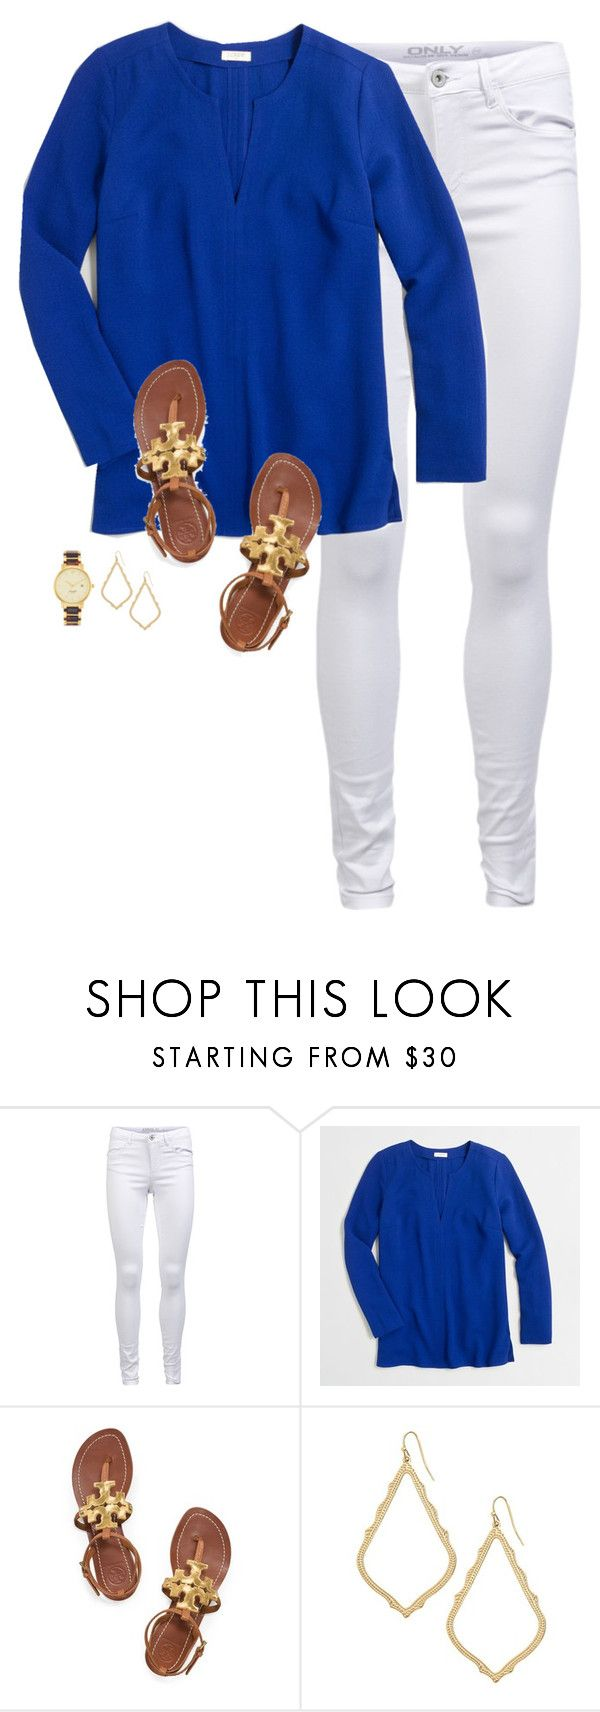 """feeling the winter blues"" by apocketfulofprep ❤ liked on Polyvore featuring ONLY, J.Crew, Tory Burch, Kendra Scott, Kate Spade, women's clothing, women's fashion, women, female and woman"